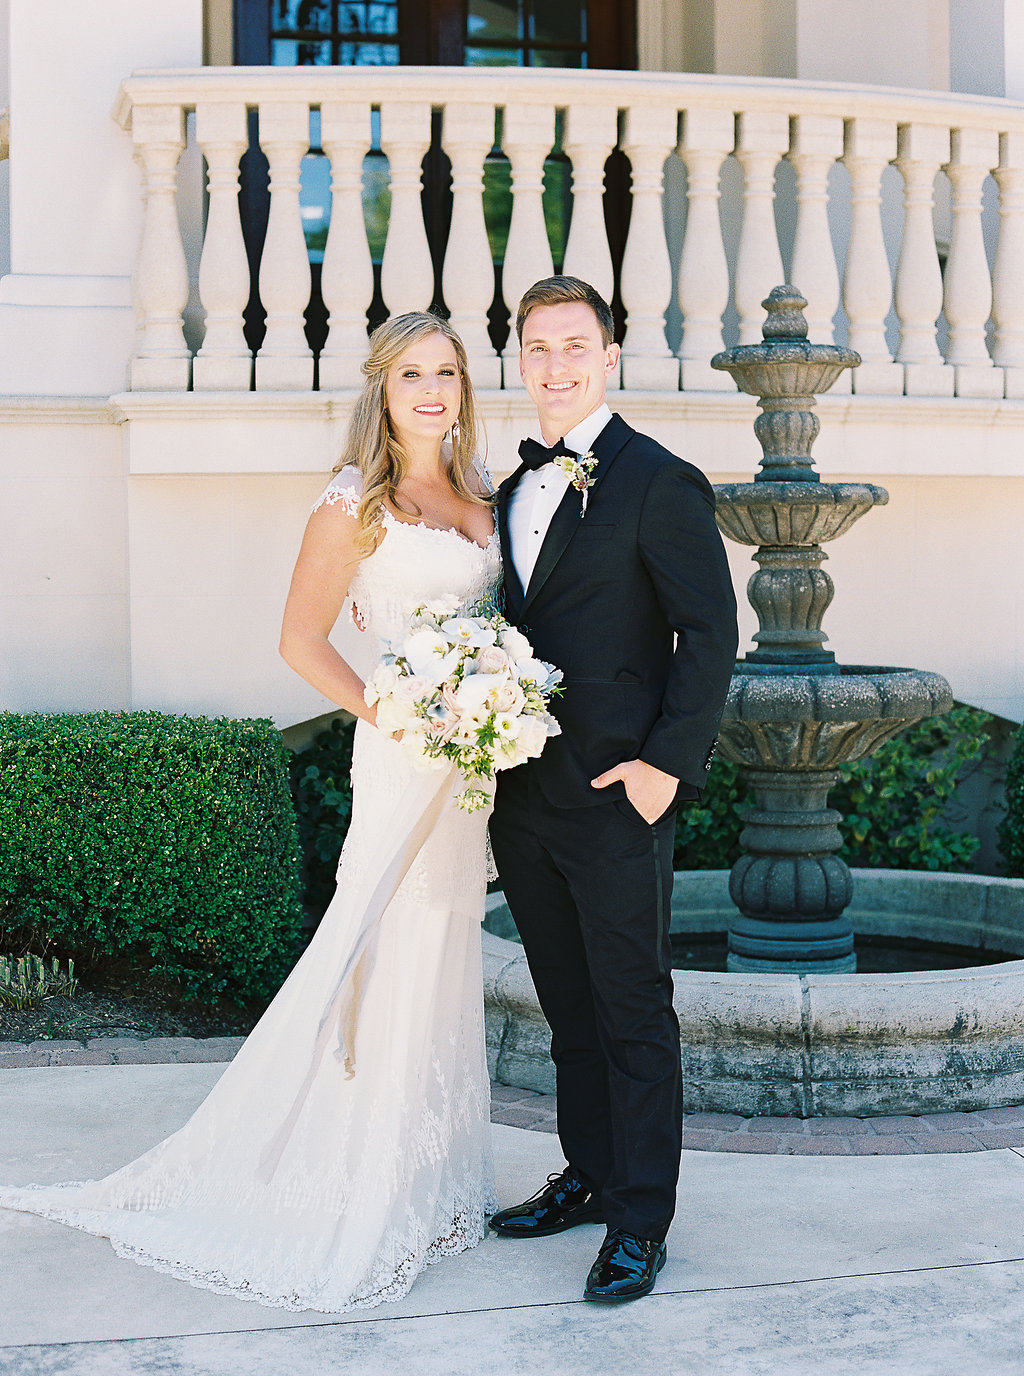 bride and groom posing in front of fountain outside of venue